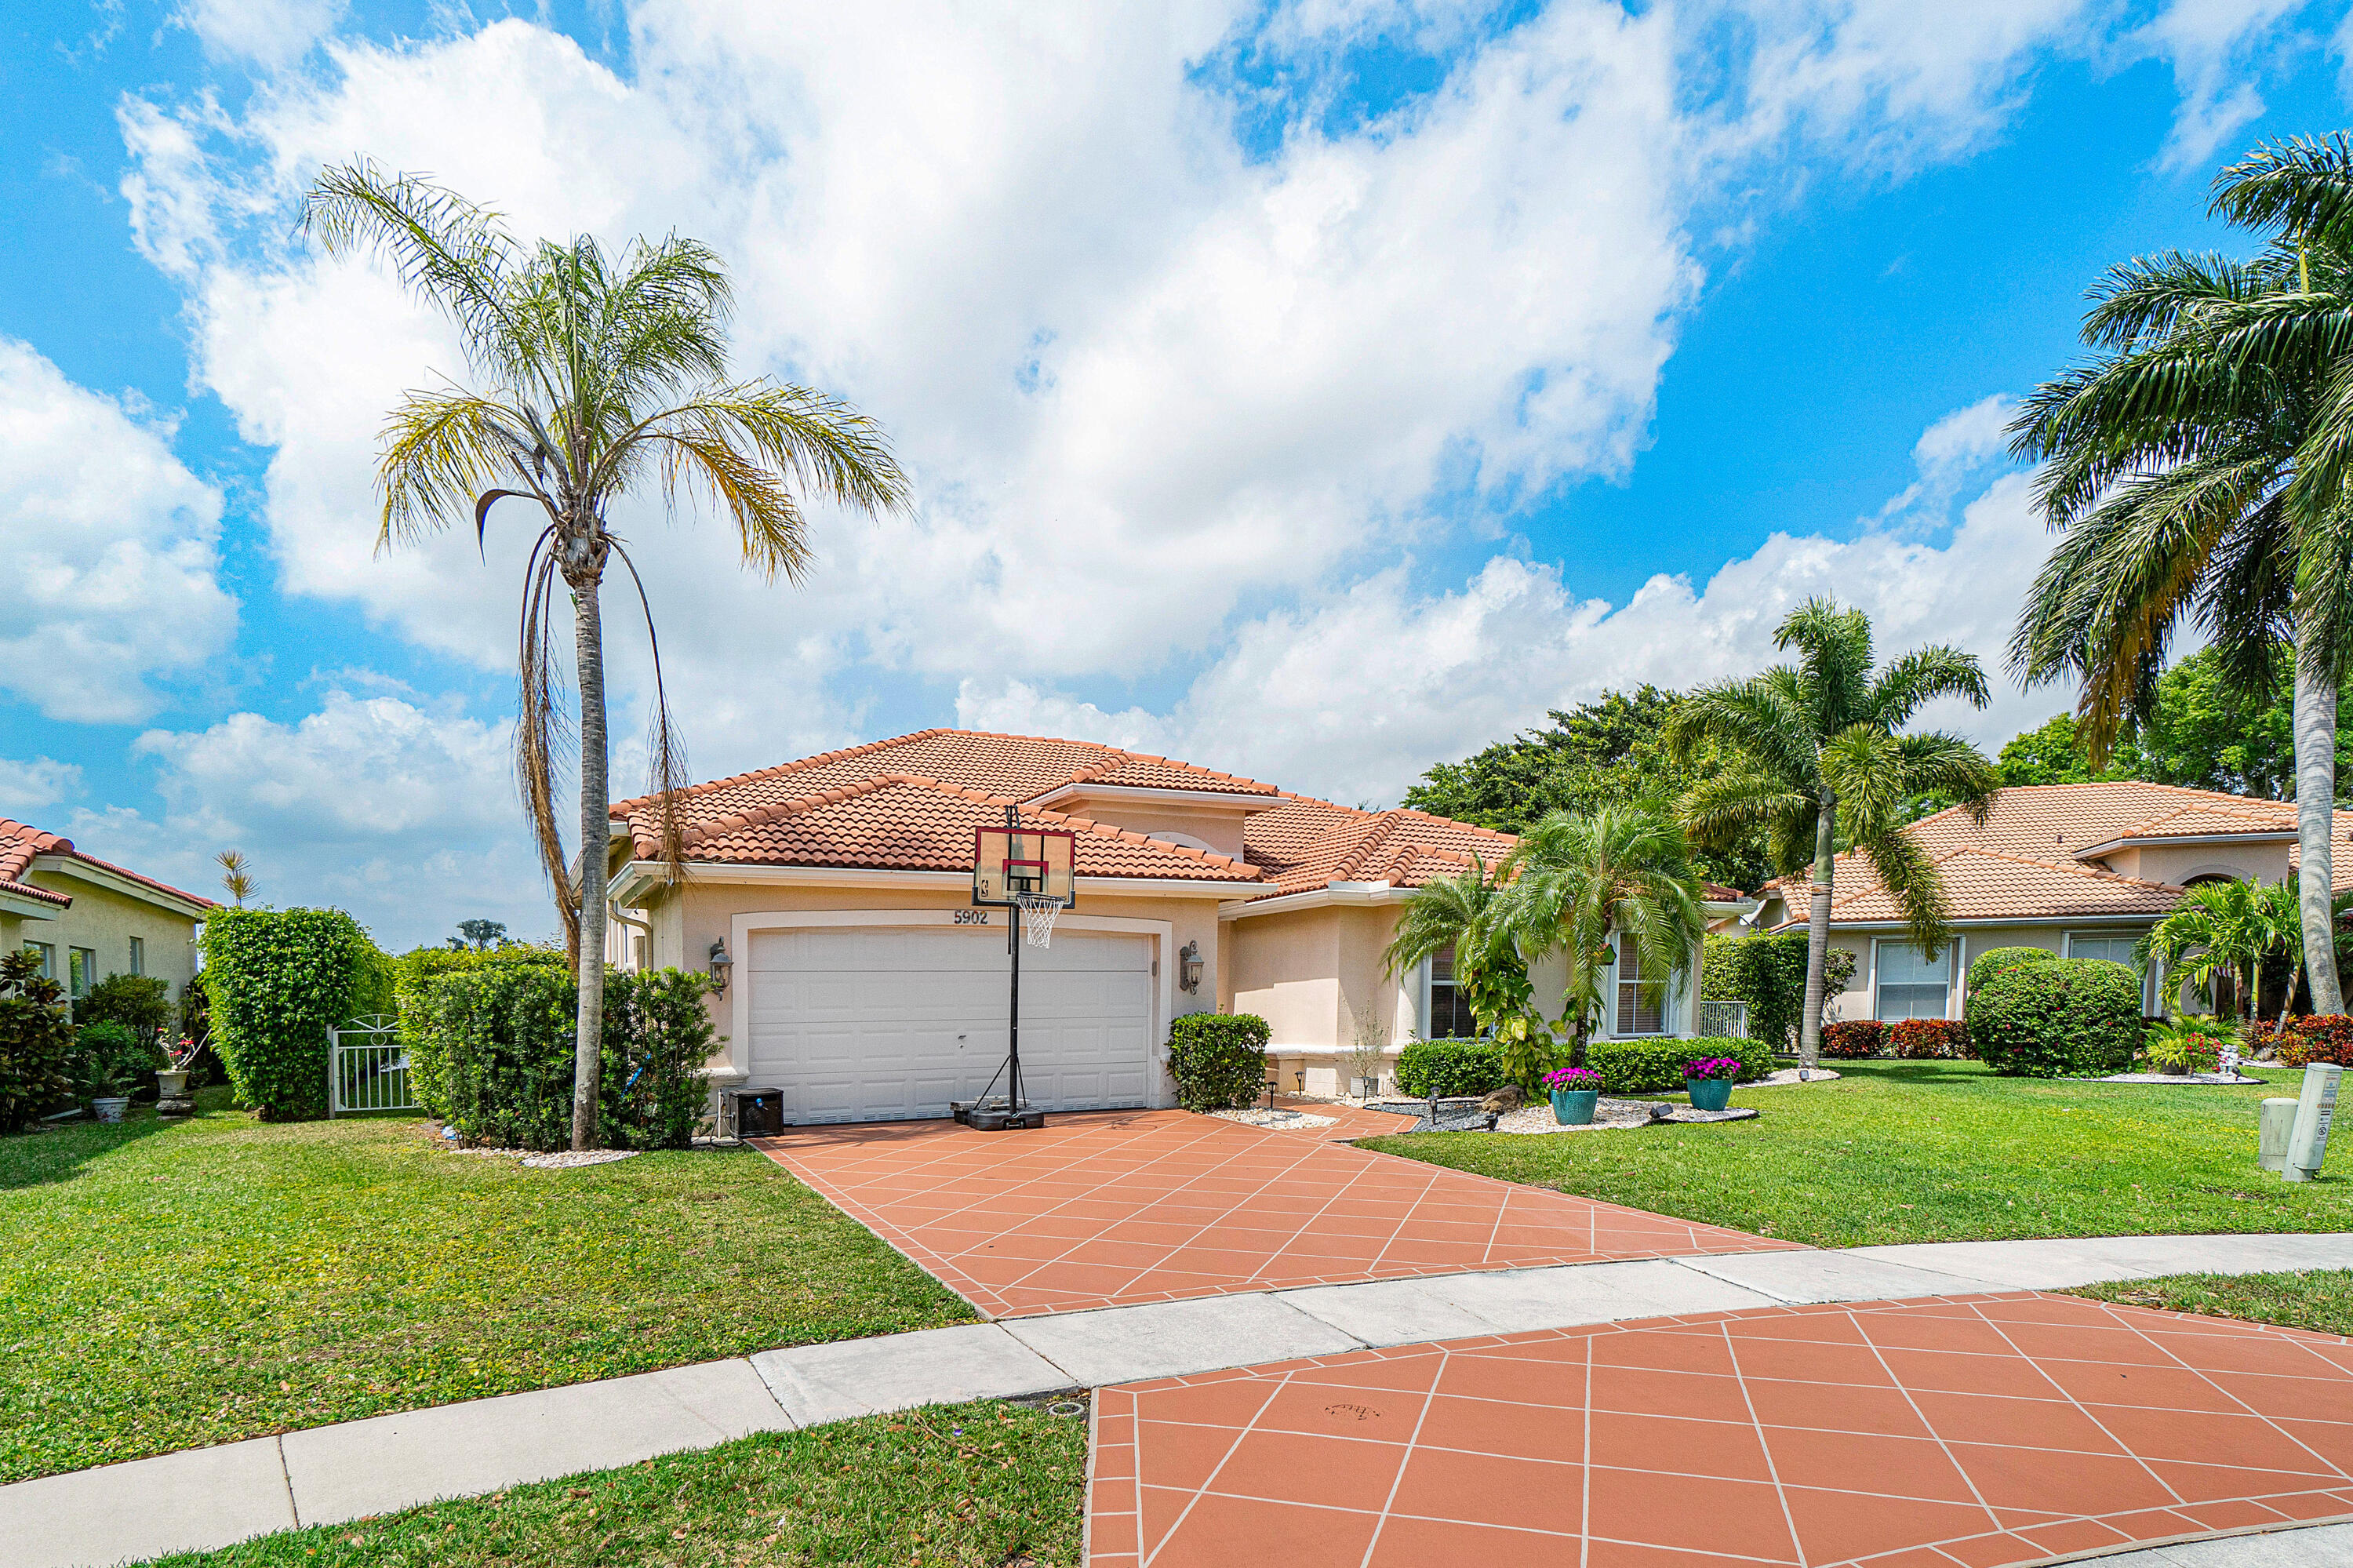 Home for sale in Las Colinas Lake Worth Florida